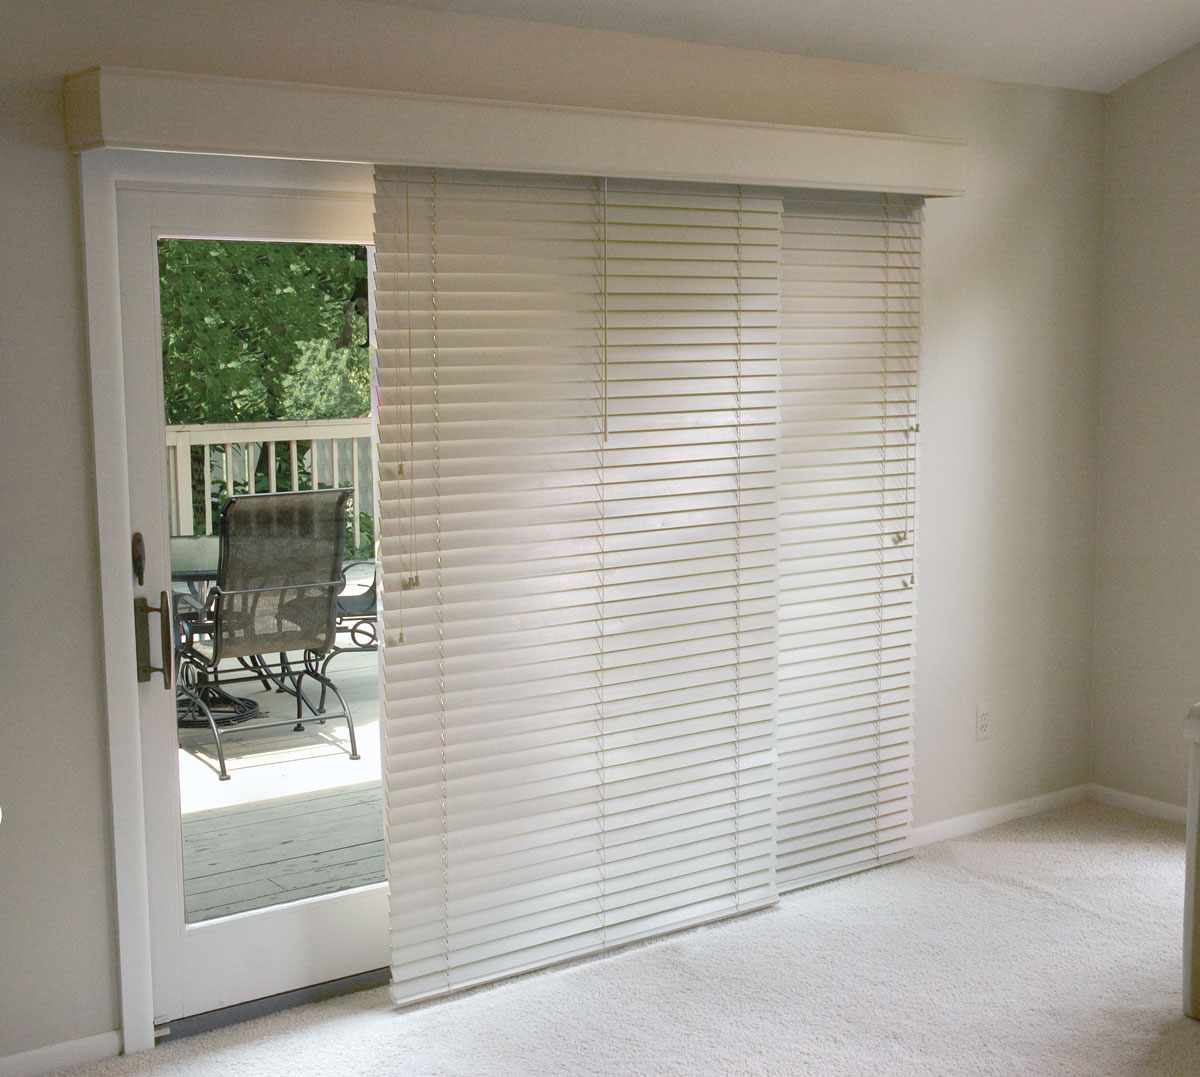 glider blinds horizontal blinds for patio doors SBFQWPZ